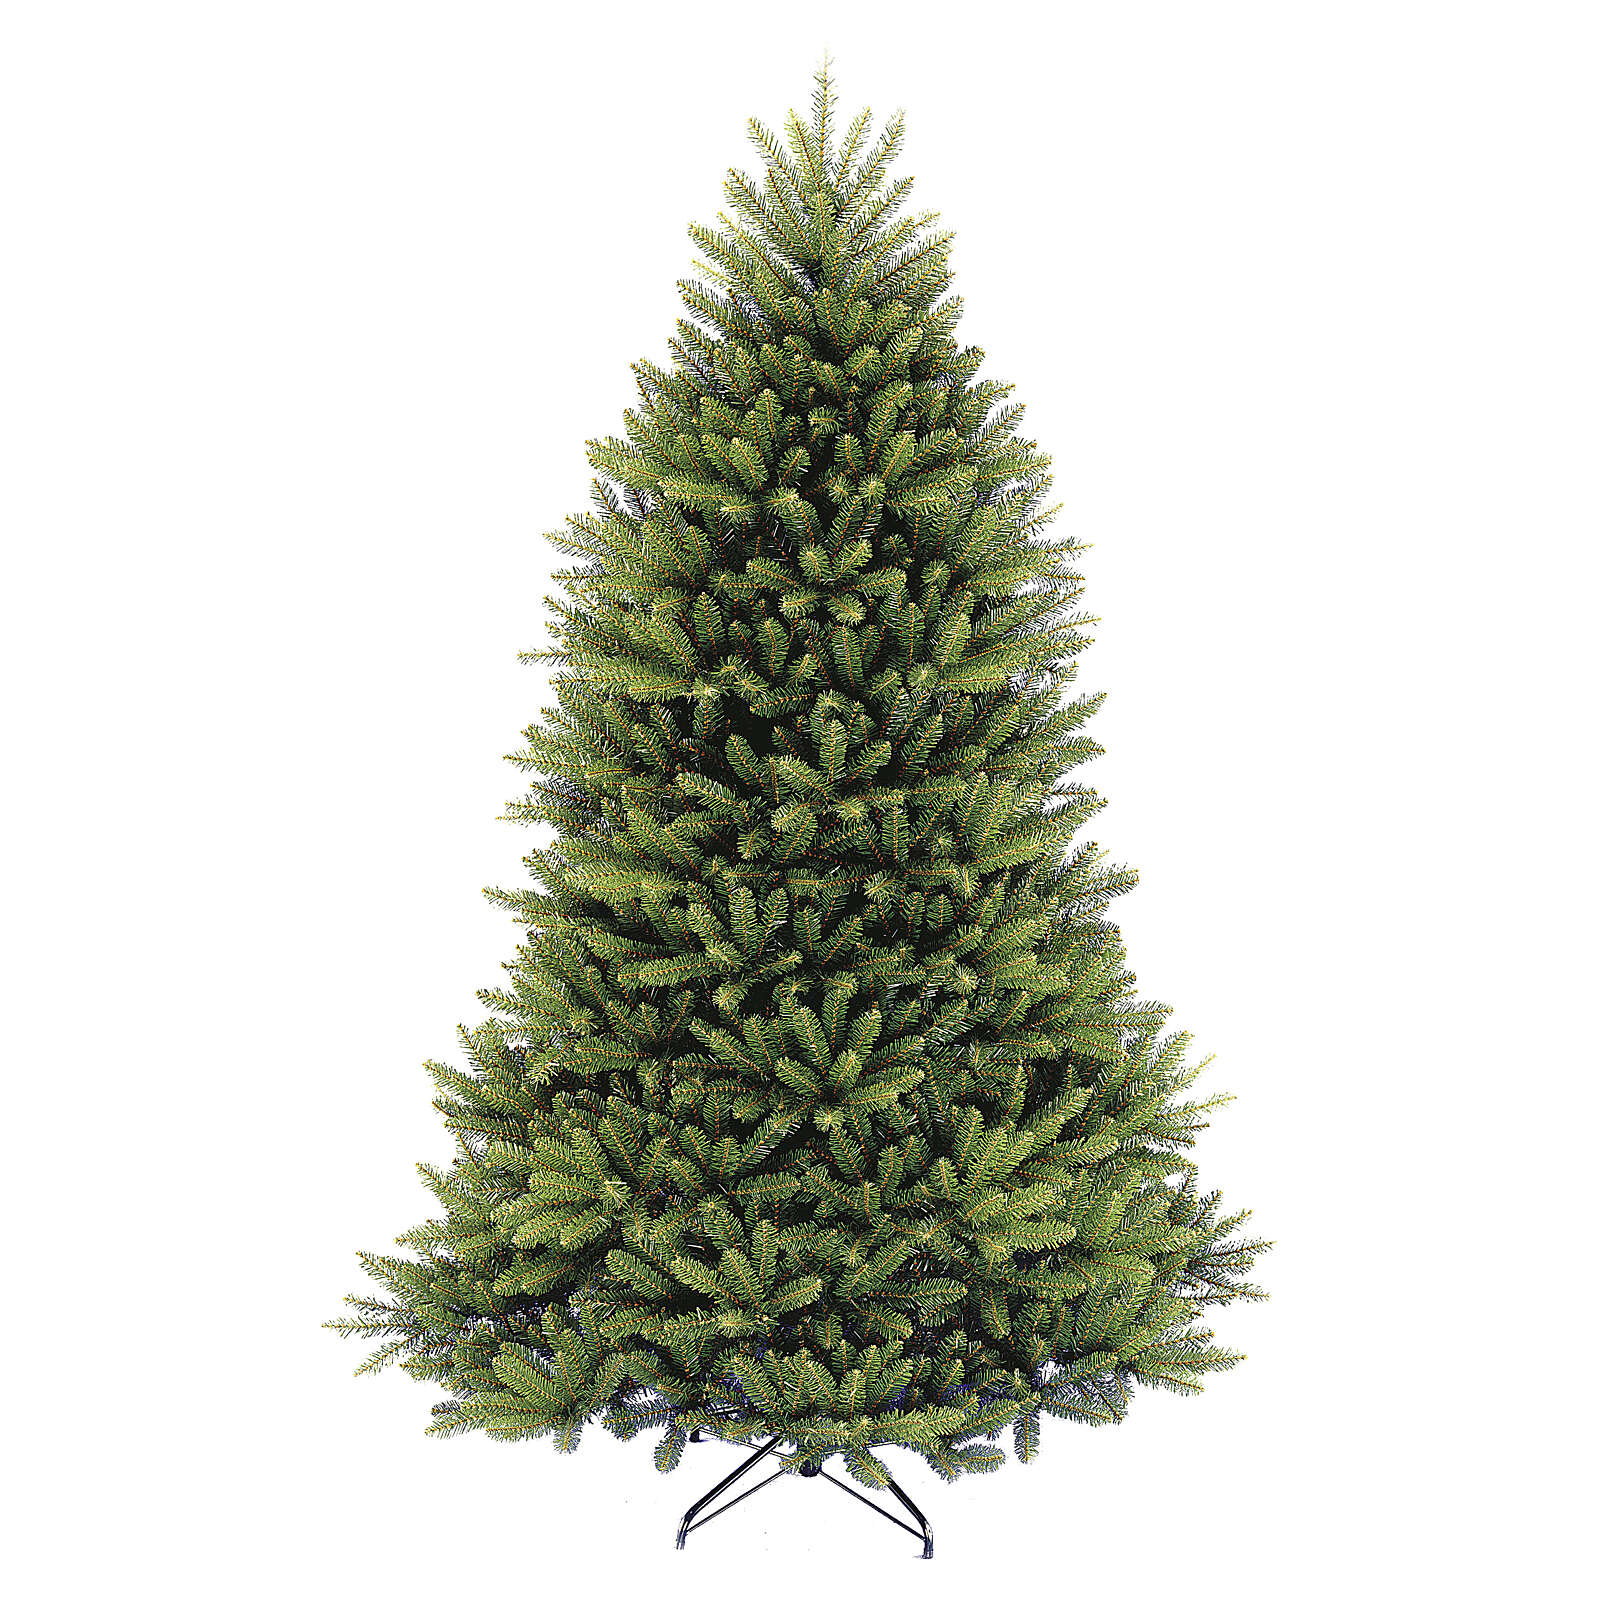 Artificial Christmas tree 180 cm green Poly Bayberry feel-real 3